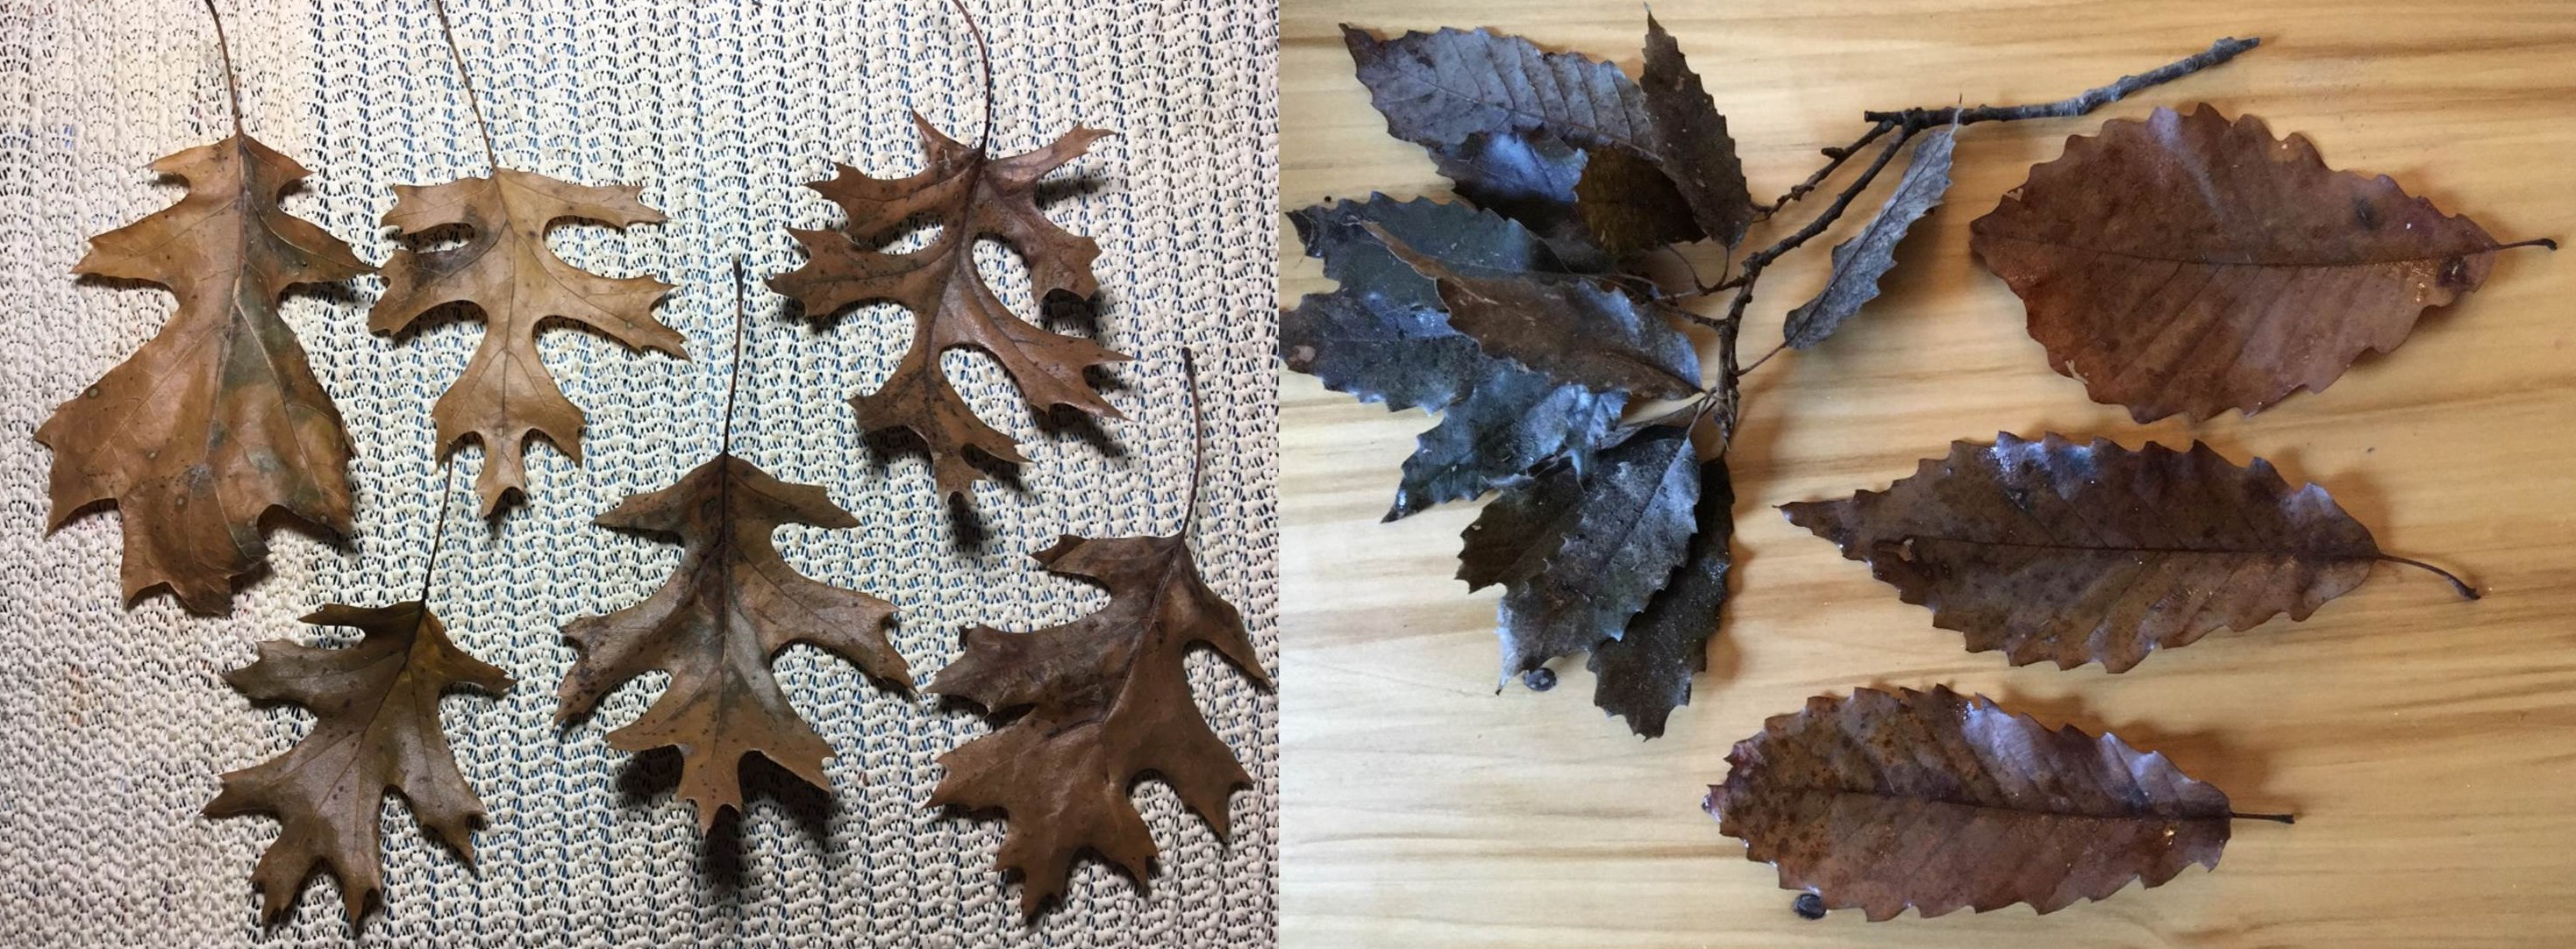 Leaves collected from John Paul Park